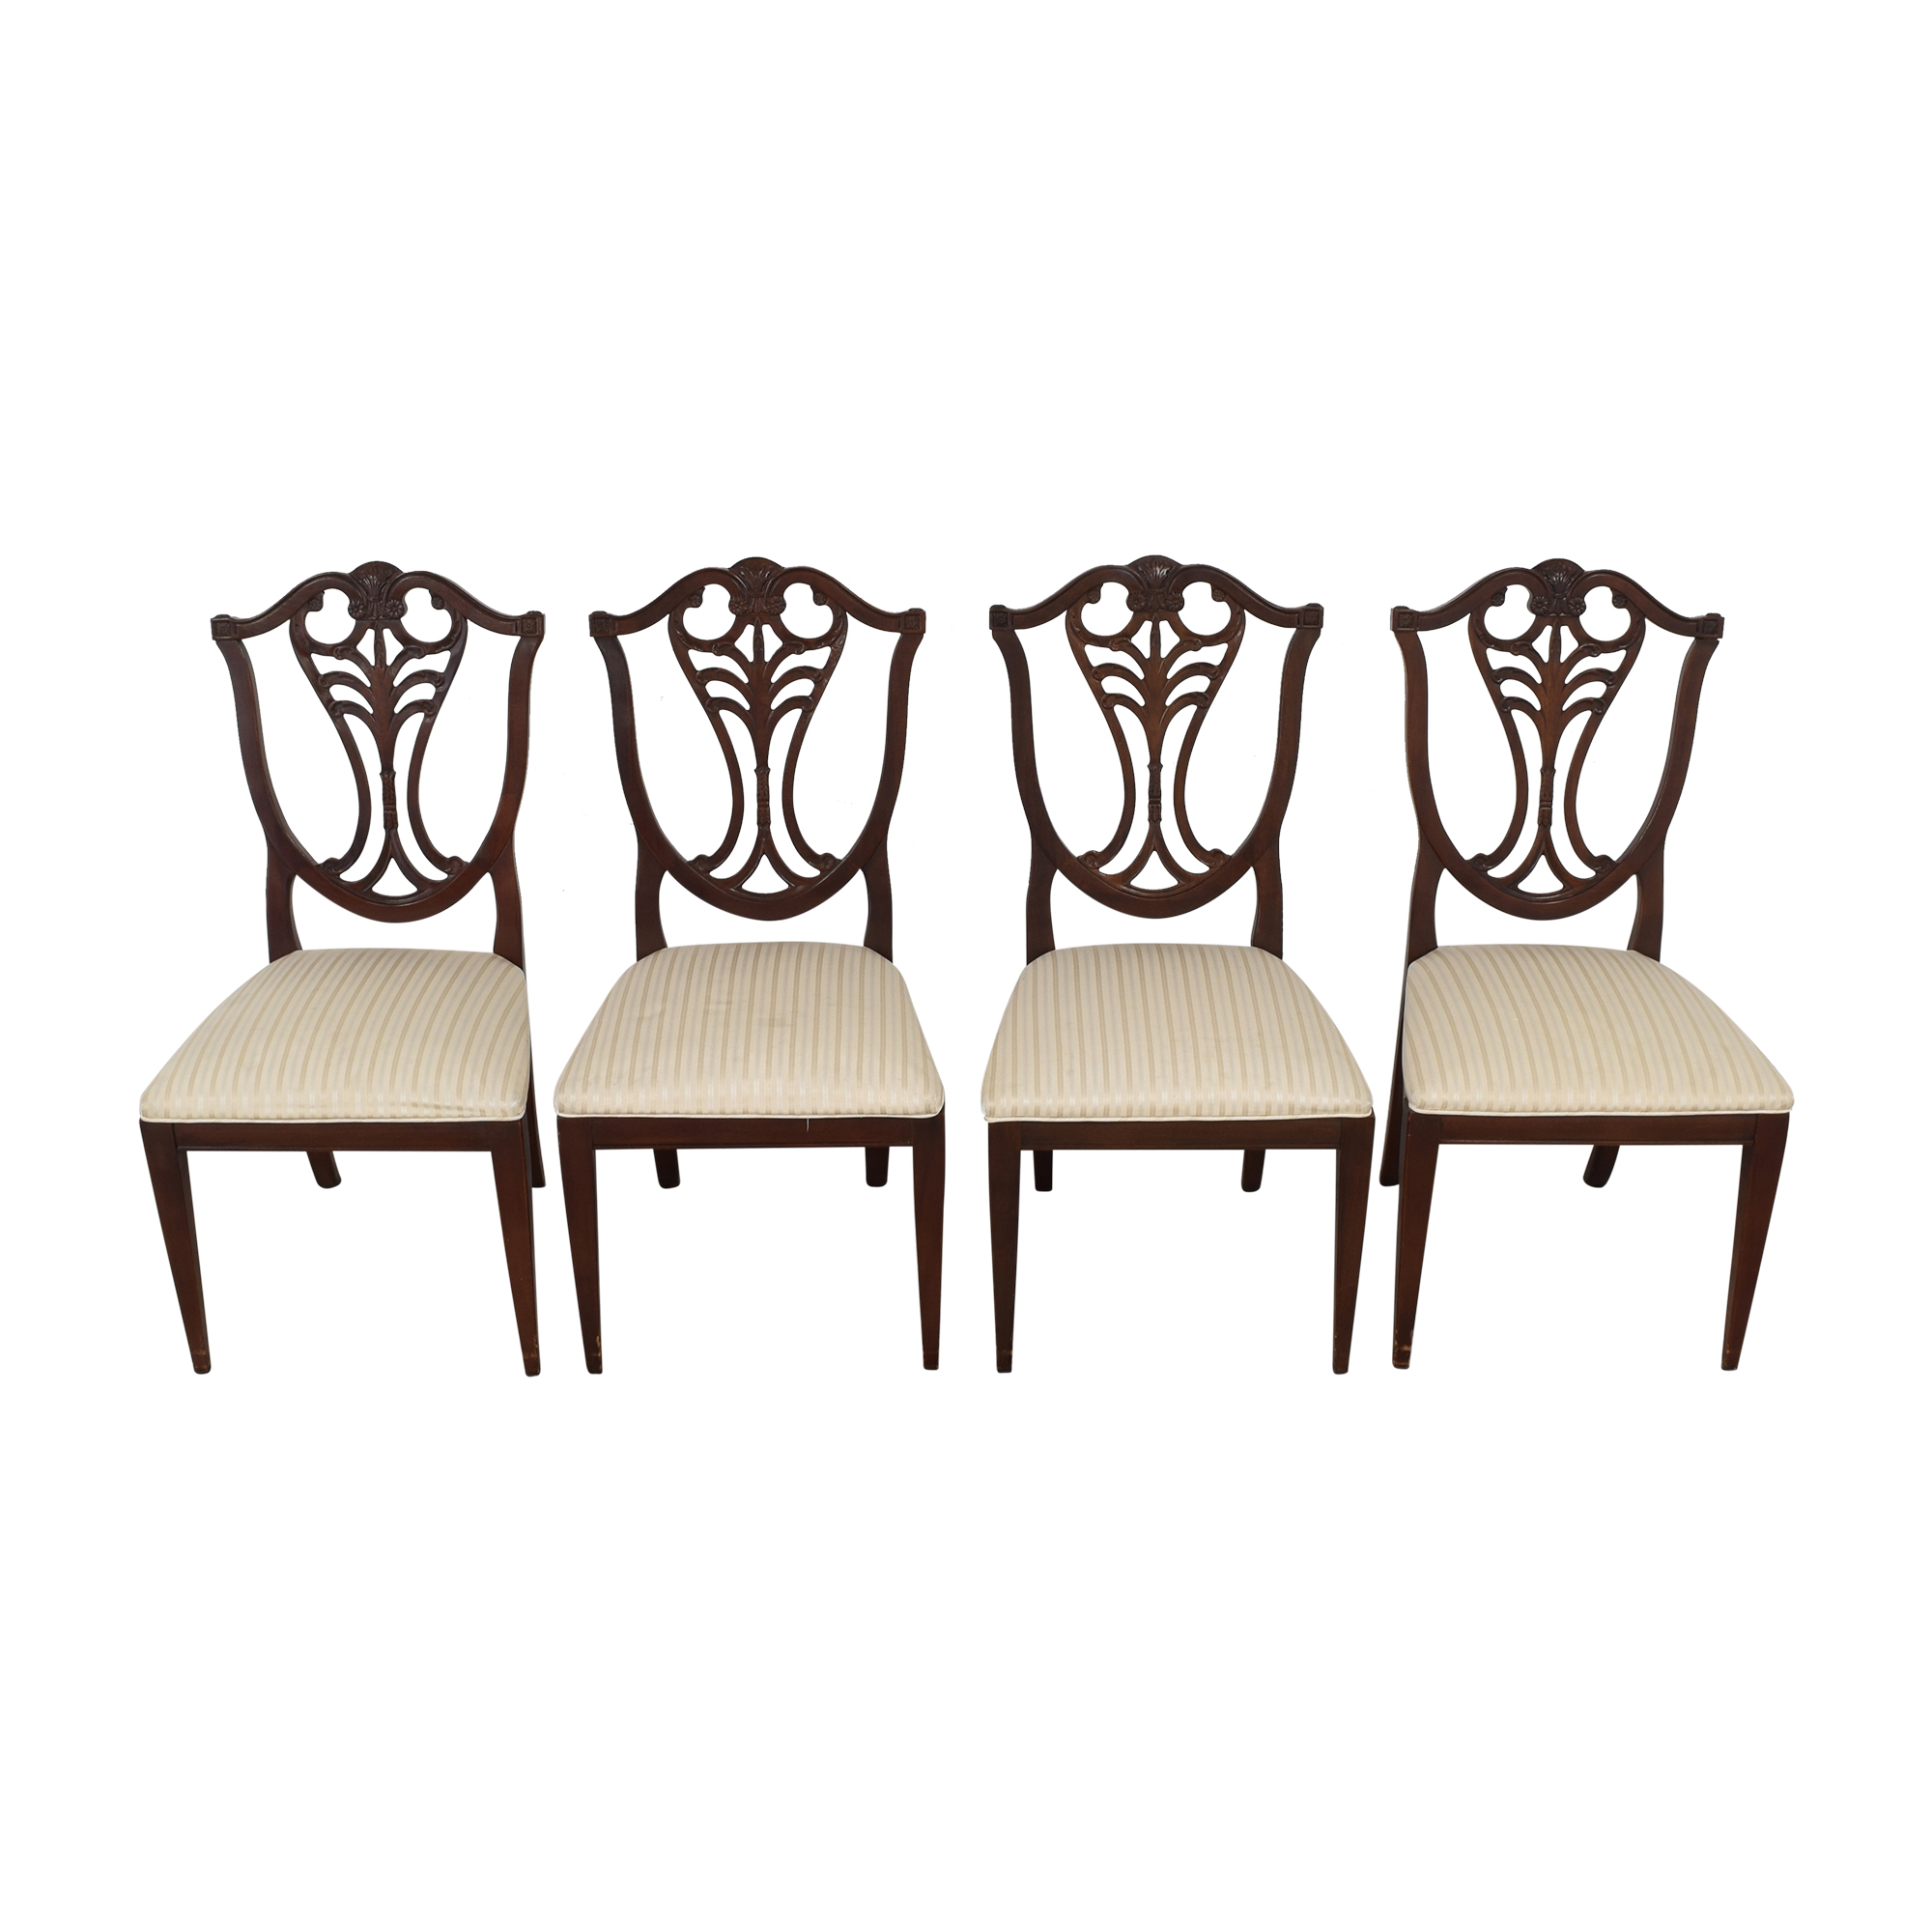 Henredon Furniture Dining Chairs / Dining Chairs